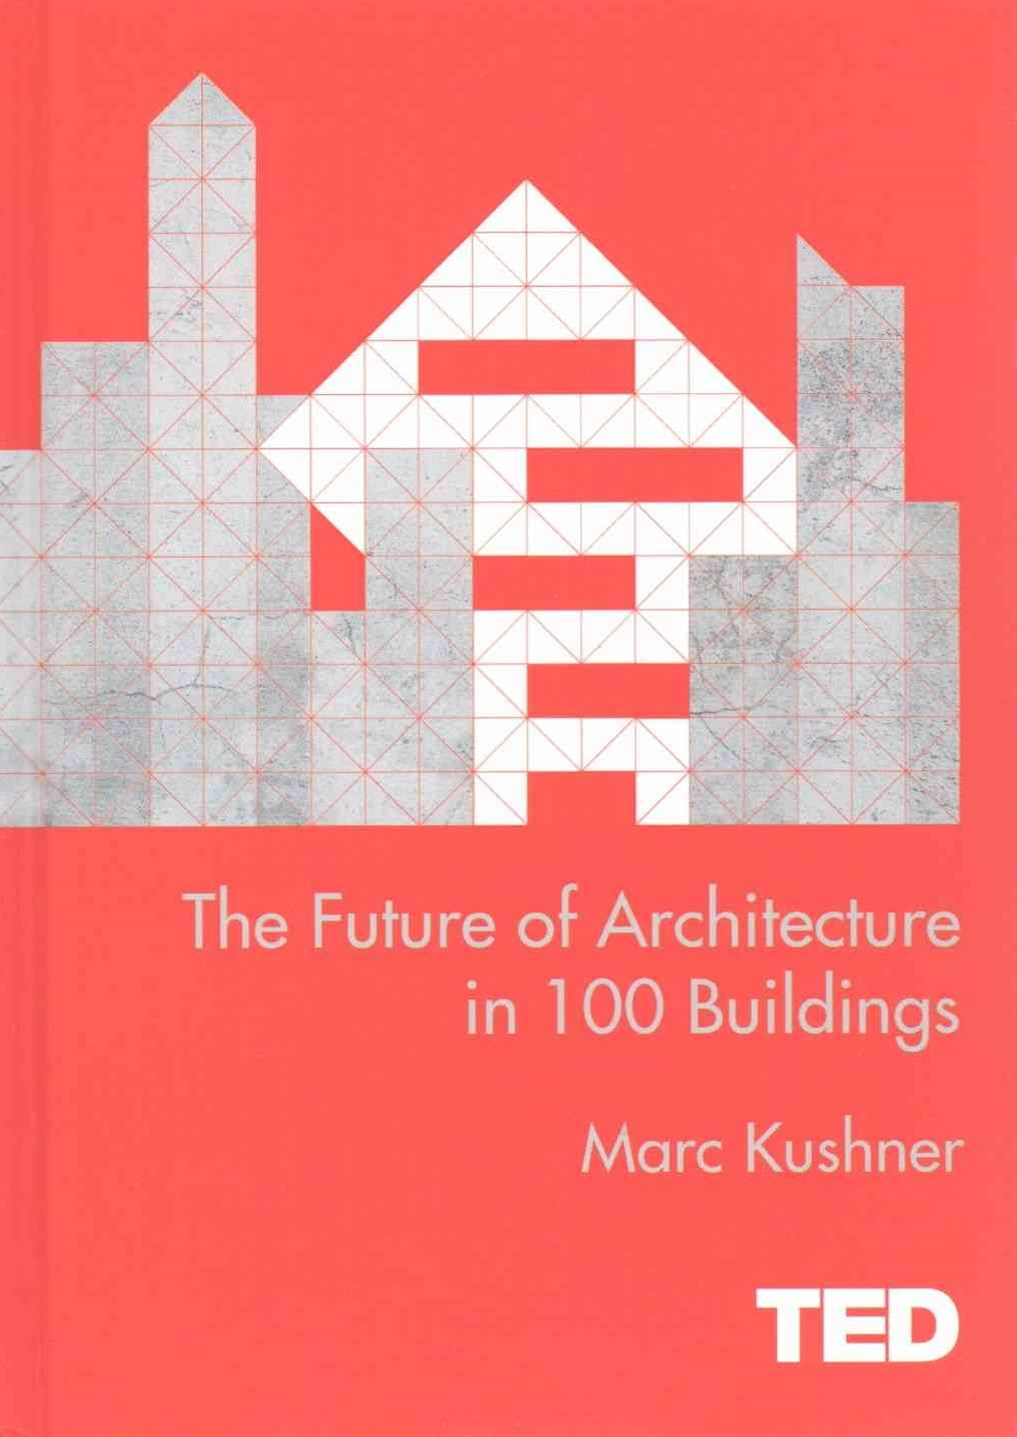 TED: The Future of Architecture in 100 Buildings